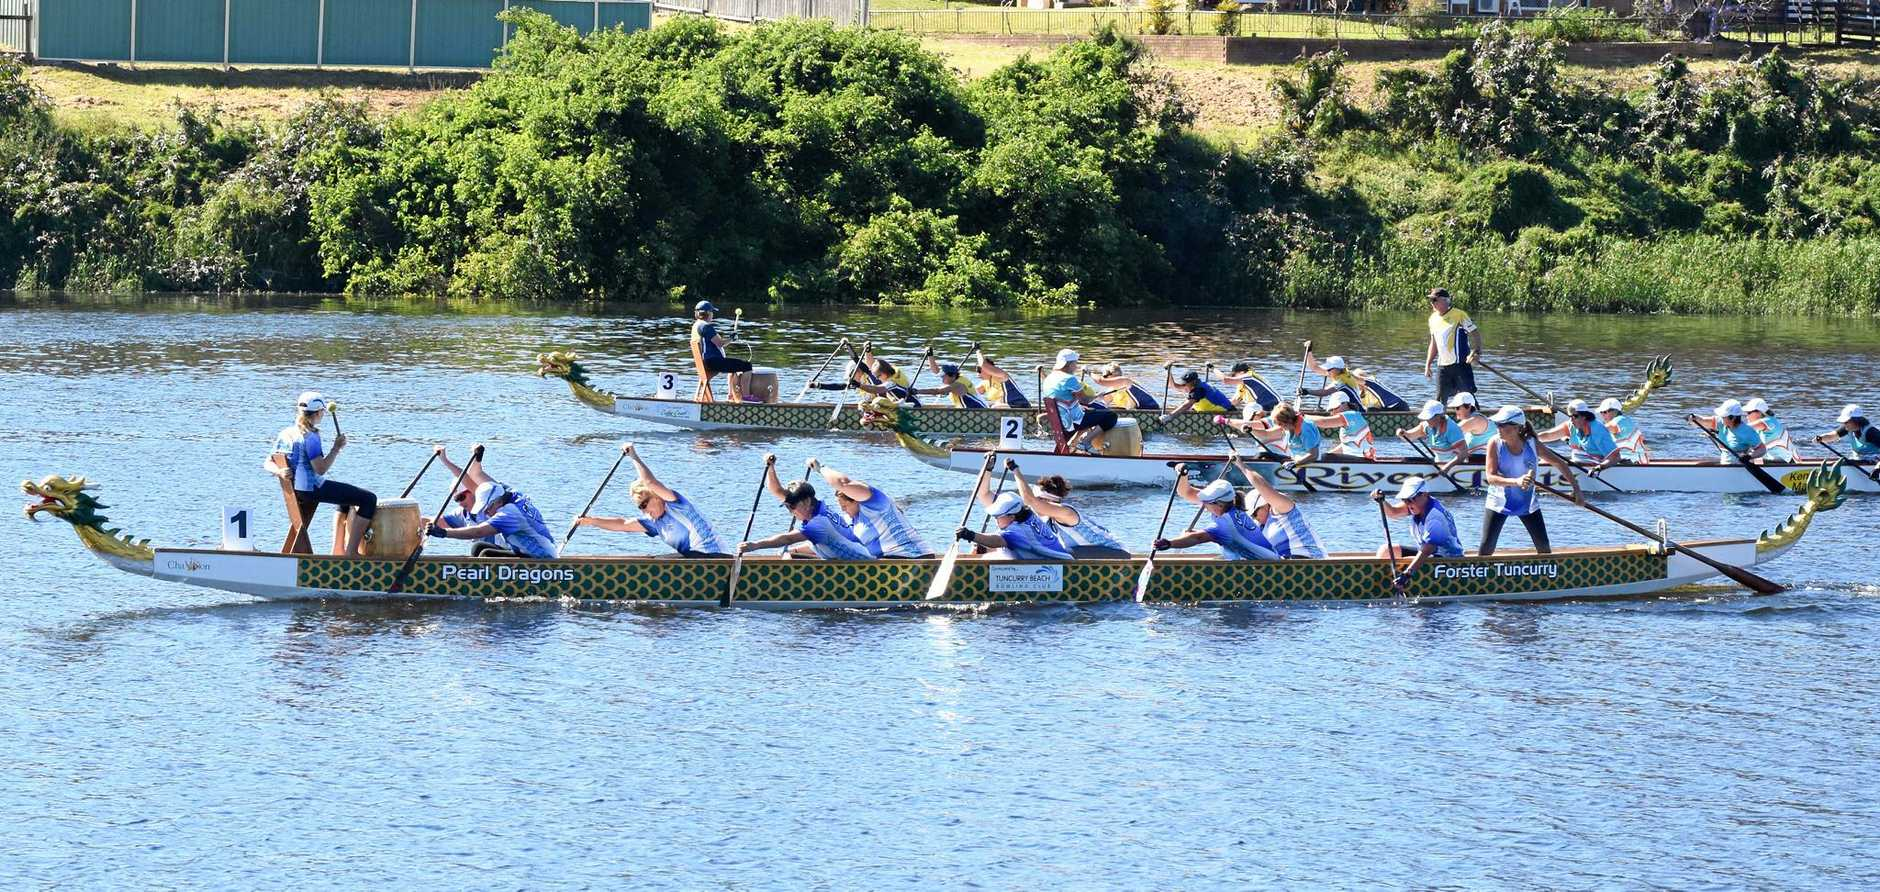 DOMINANT: Grafton Women's Team in boat one showing their style against the competition to win the race by a over a boat length.